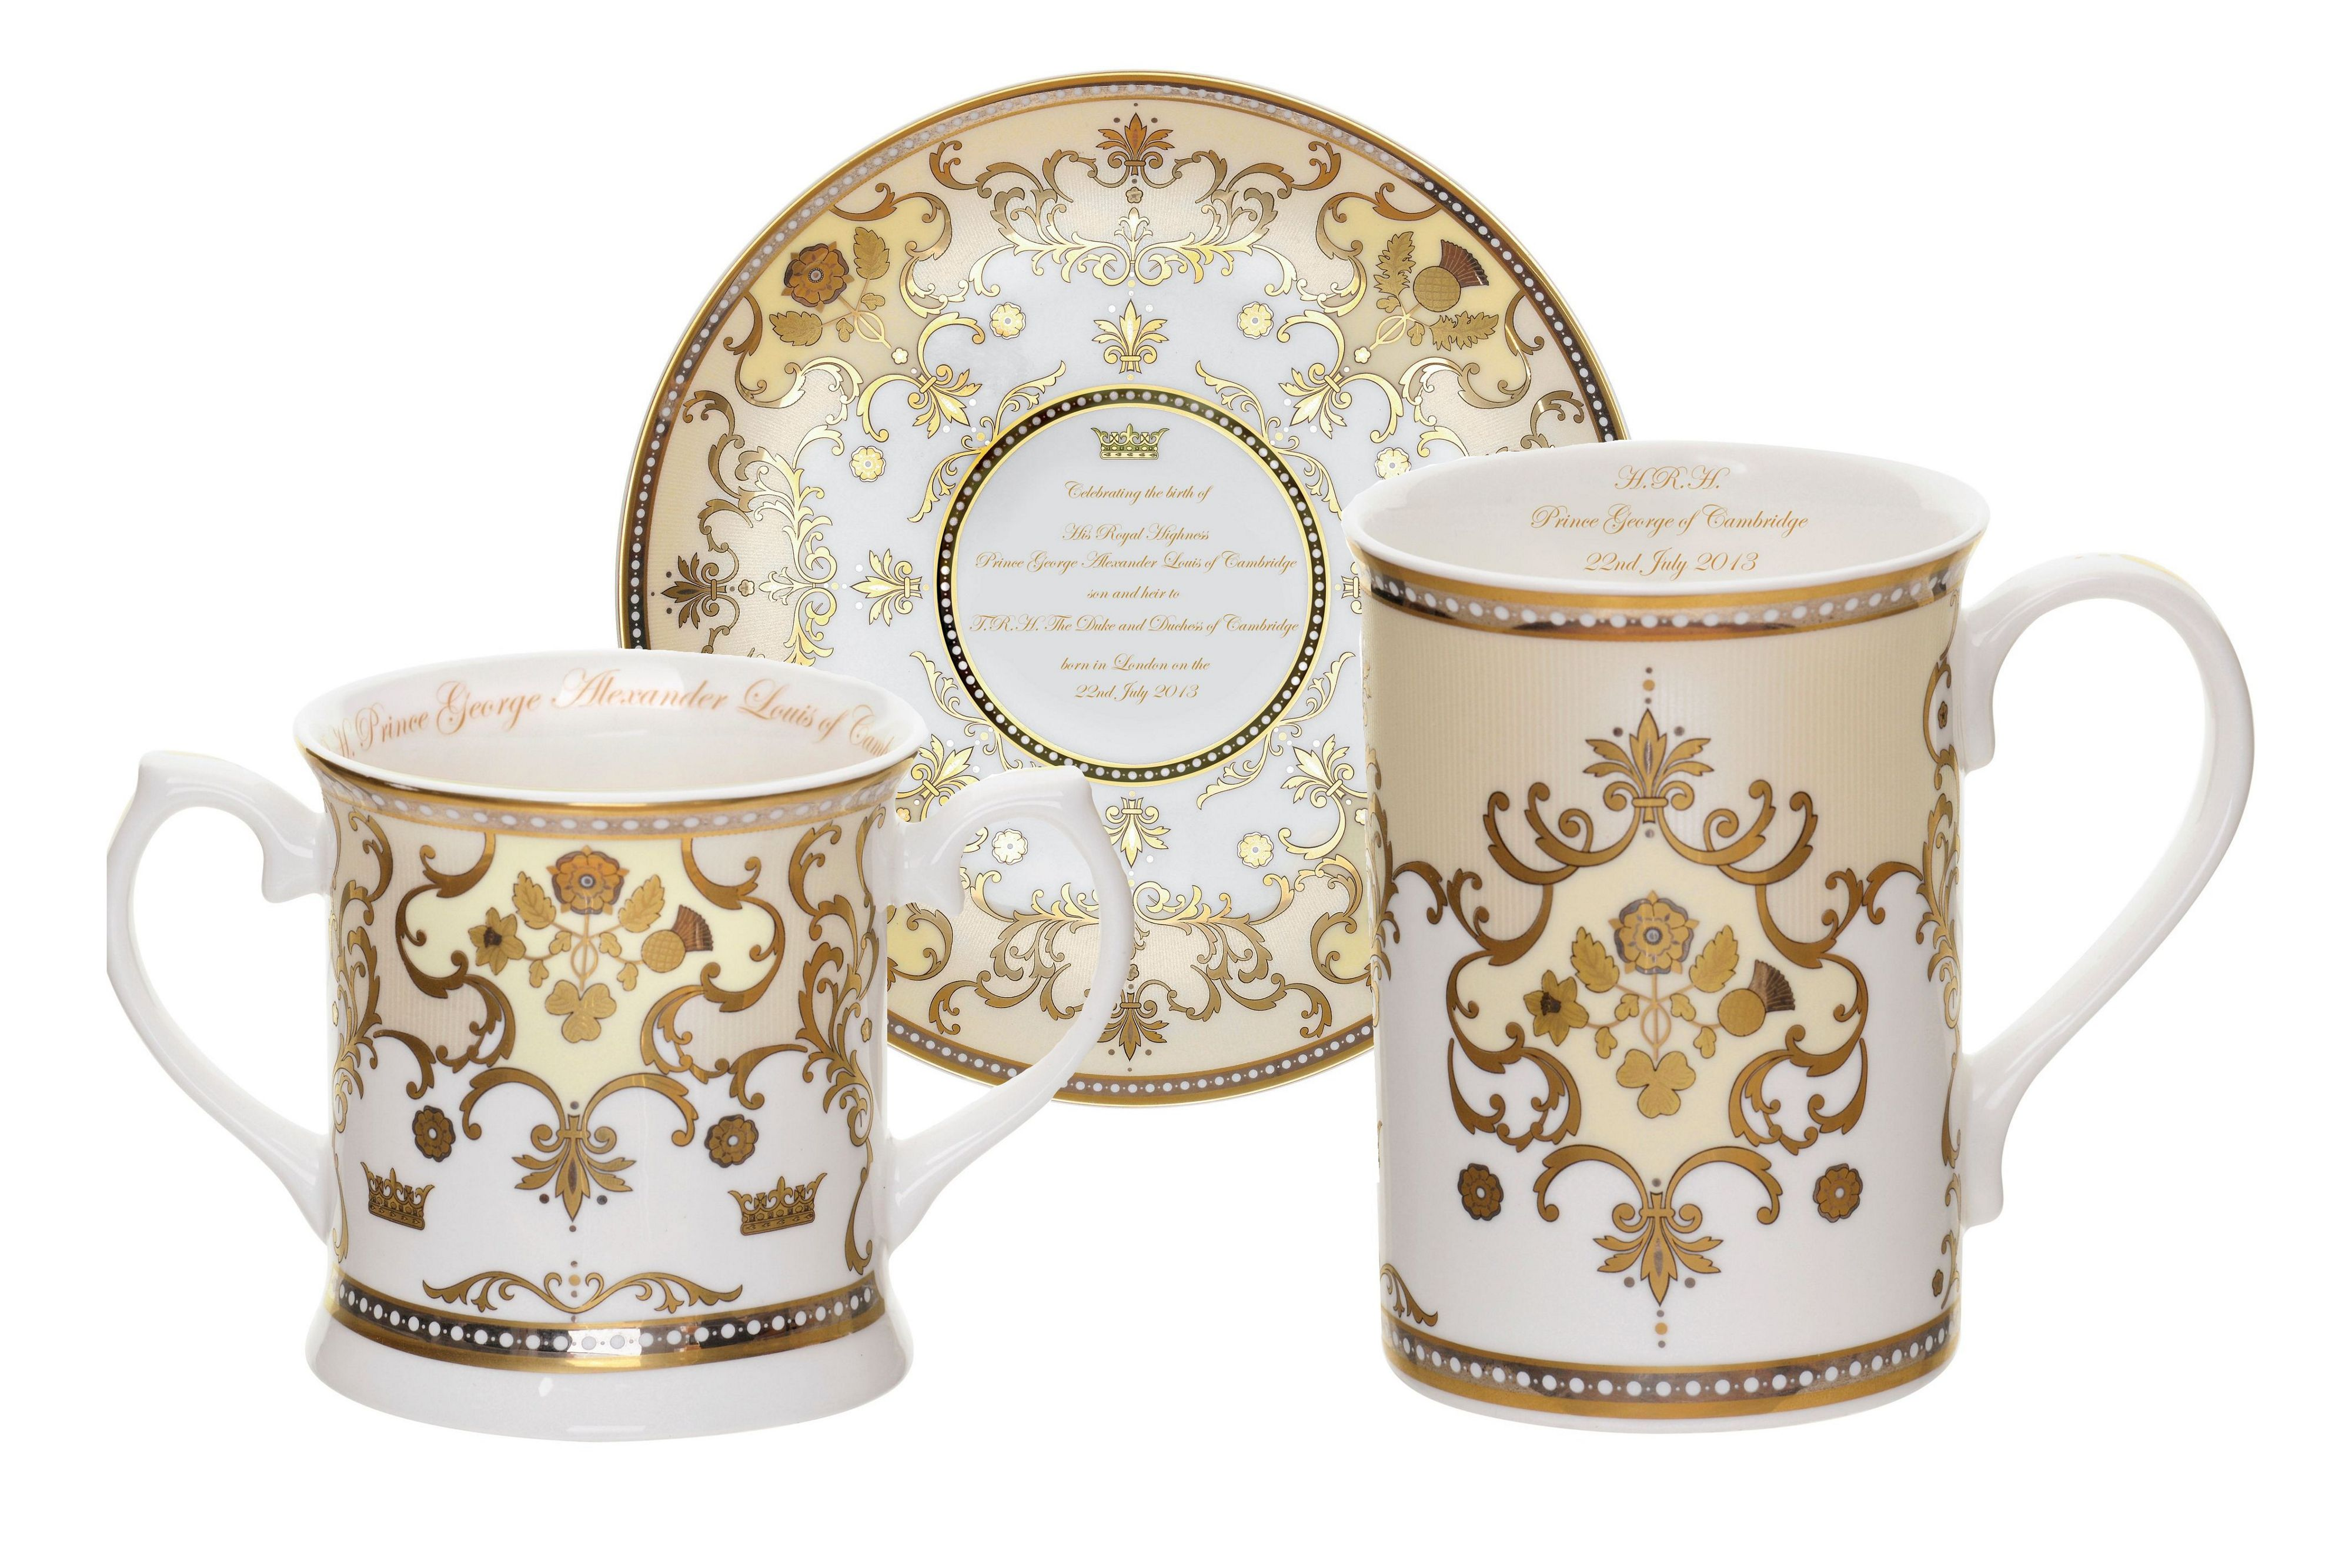 Royal baby commemorative collection